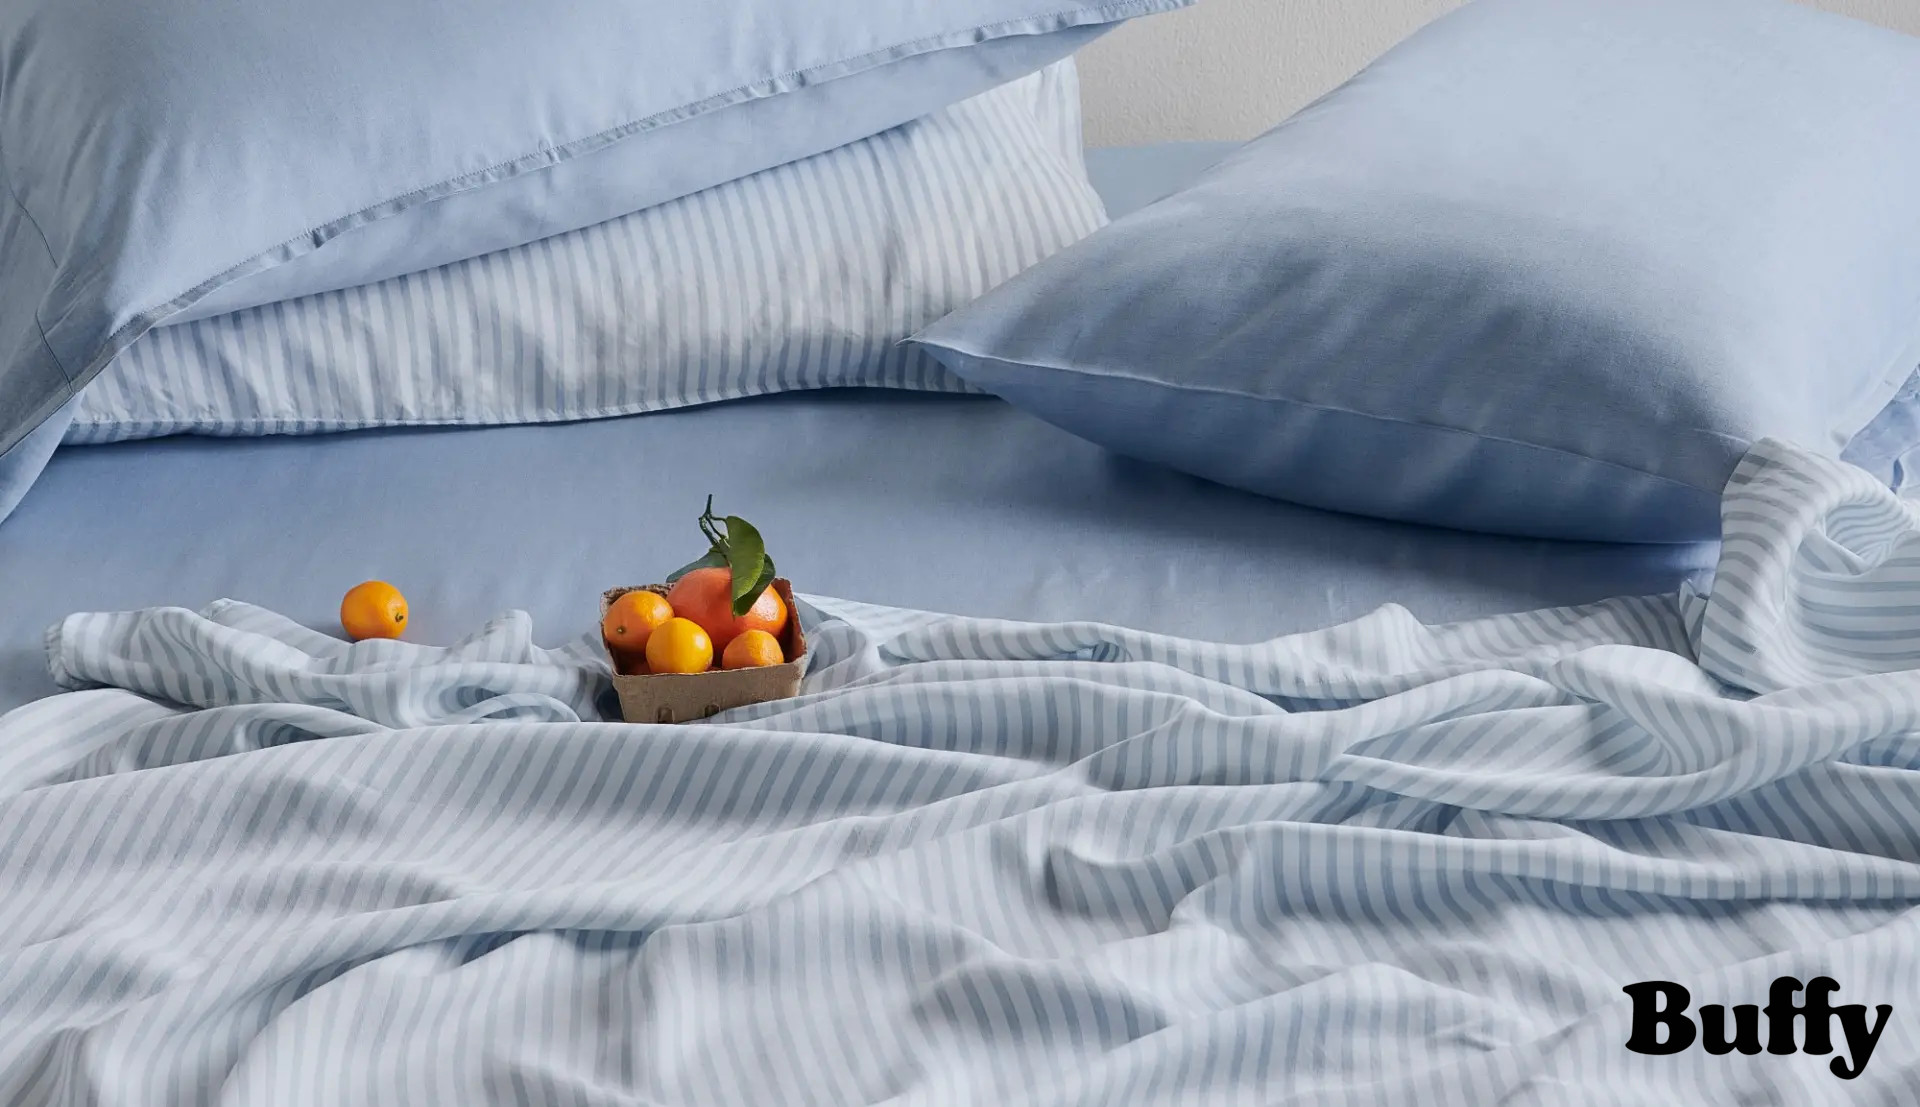 brethable sheets made for sleeping cool